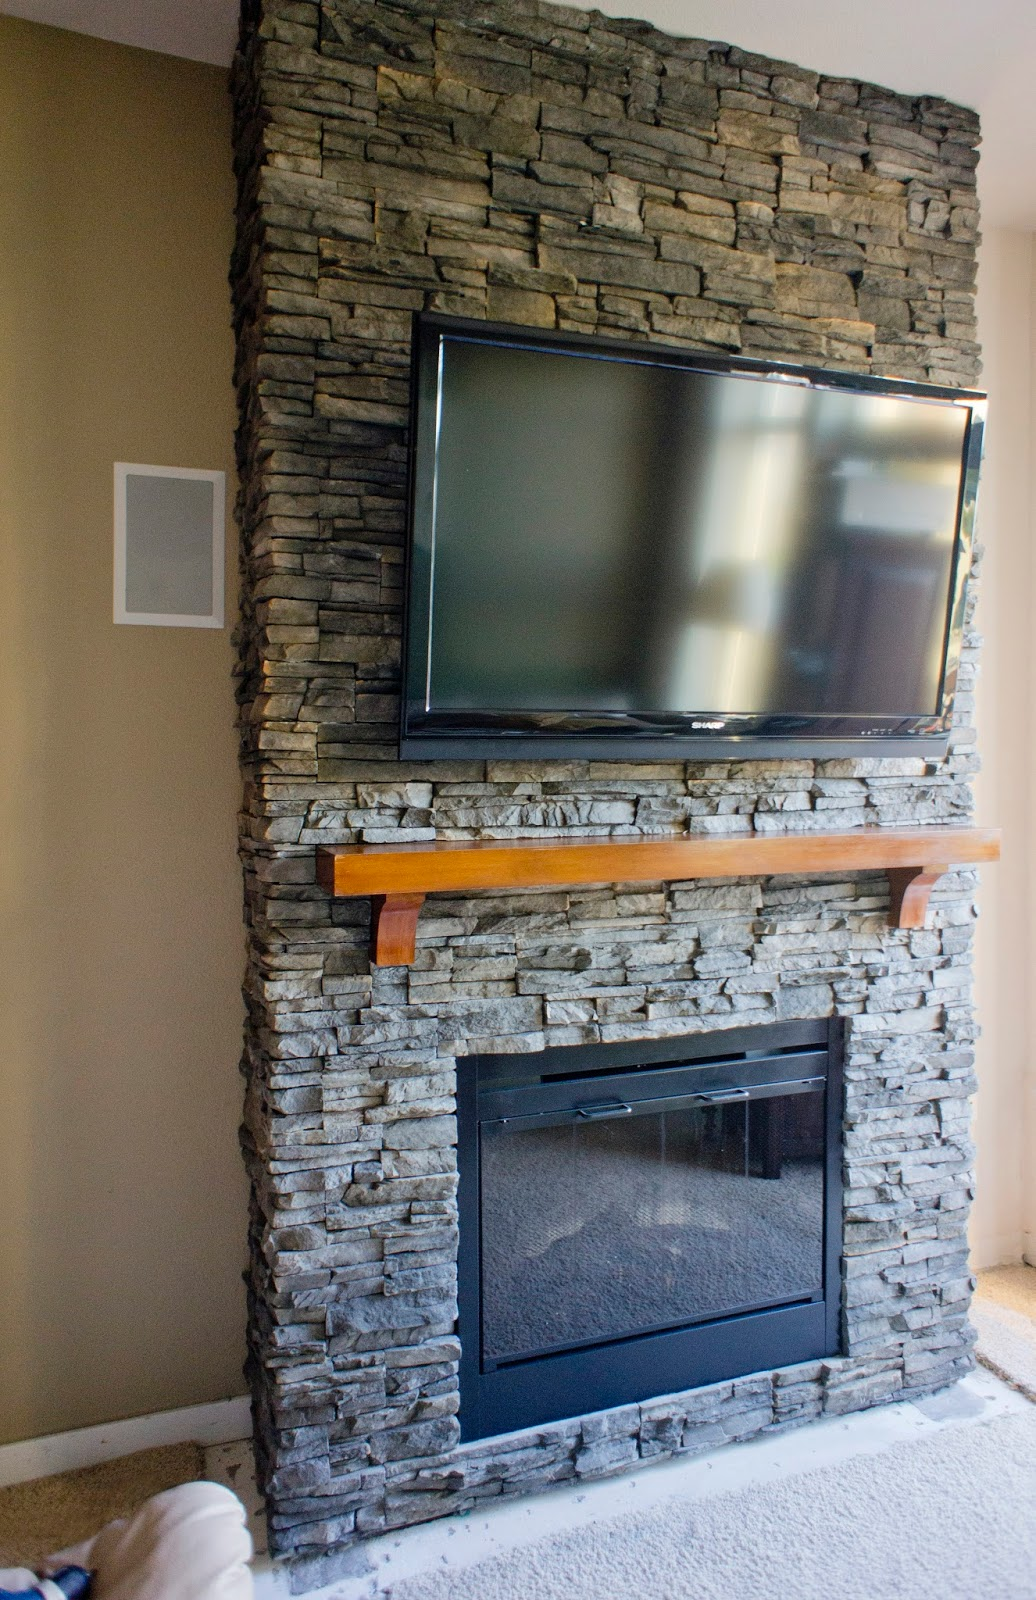 Hirondelle Rustique: DIY Stacked Stone Fireplace (First